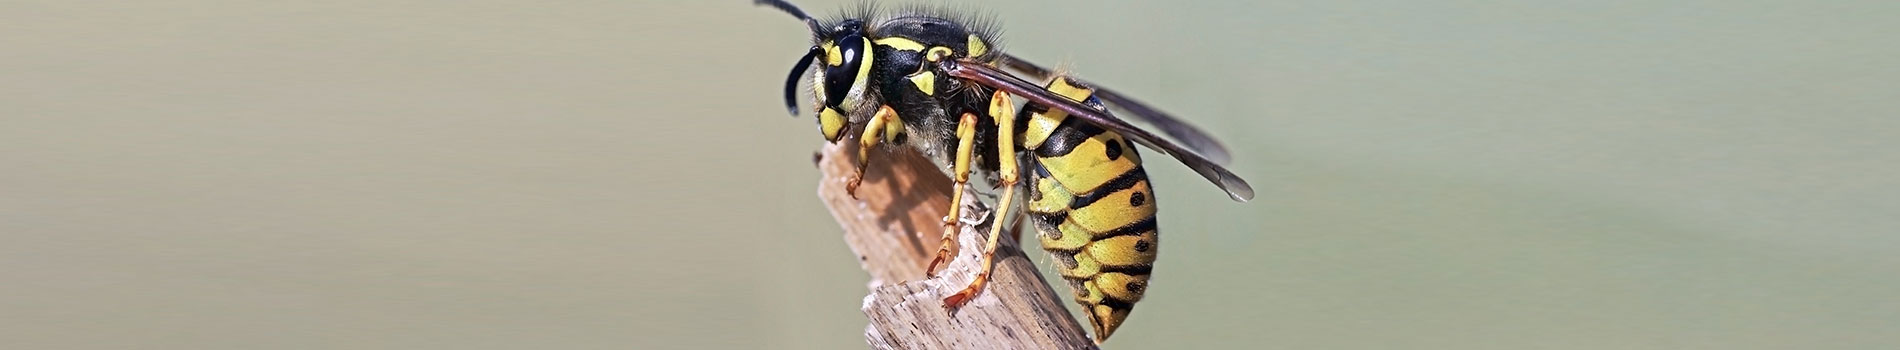 Image of a wasp. A common pest control species in the spring and summer months